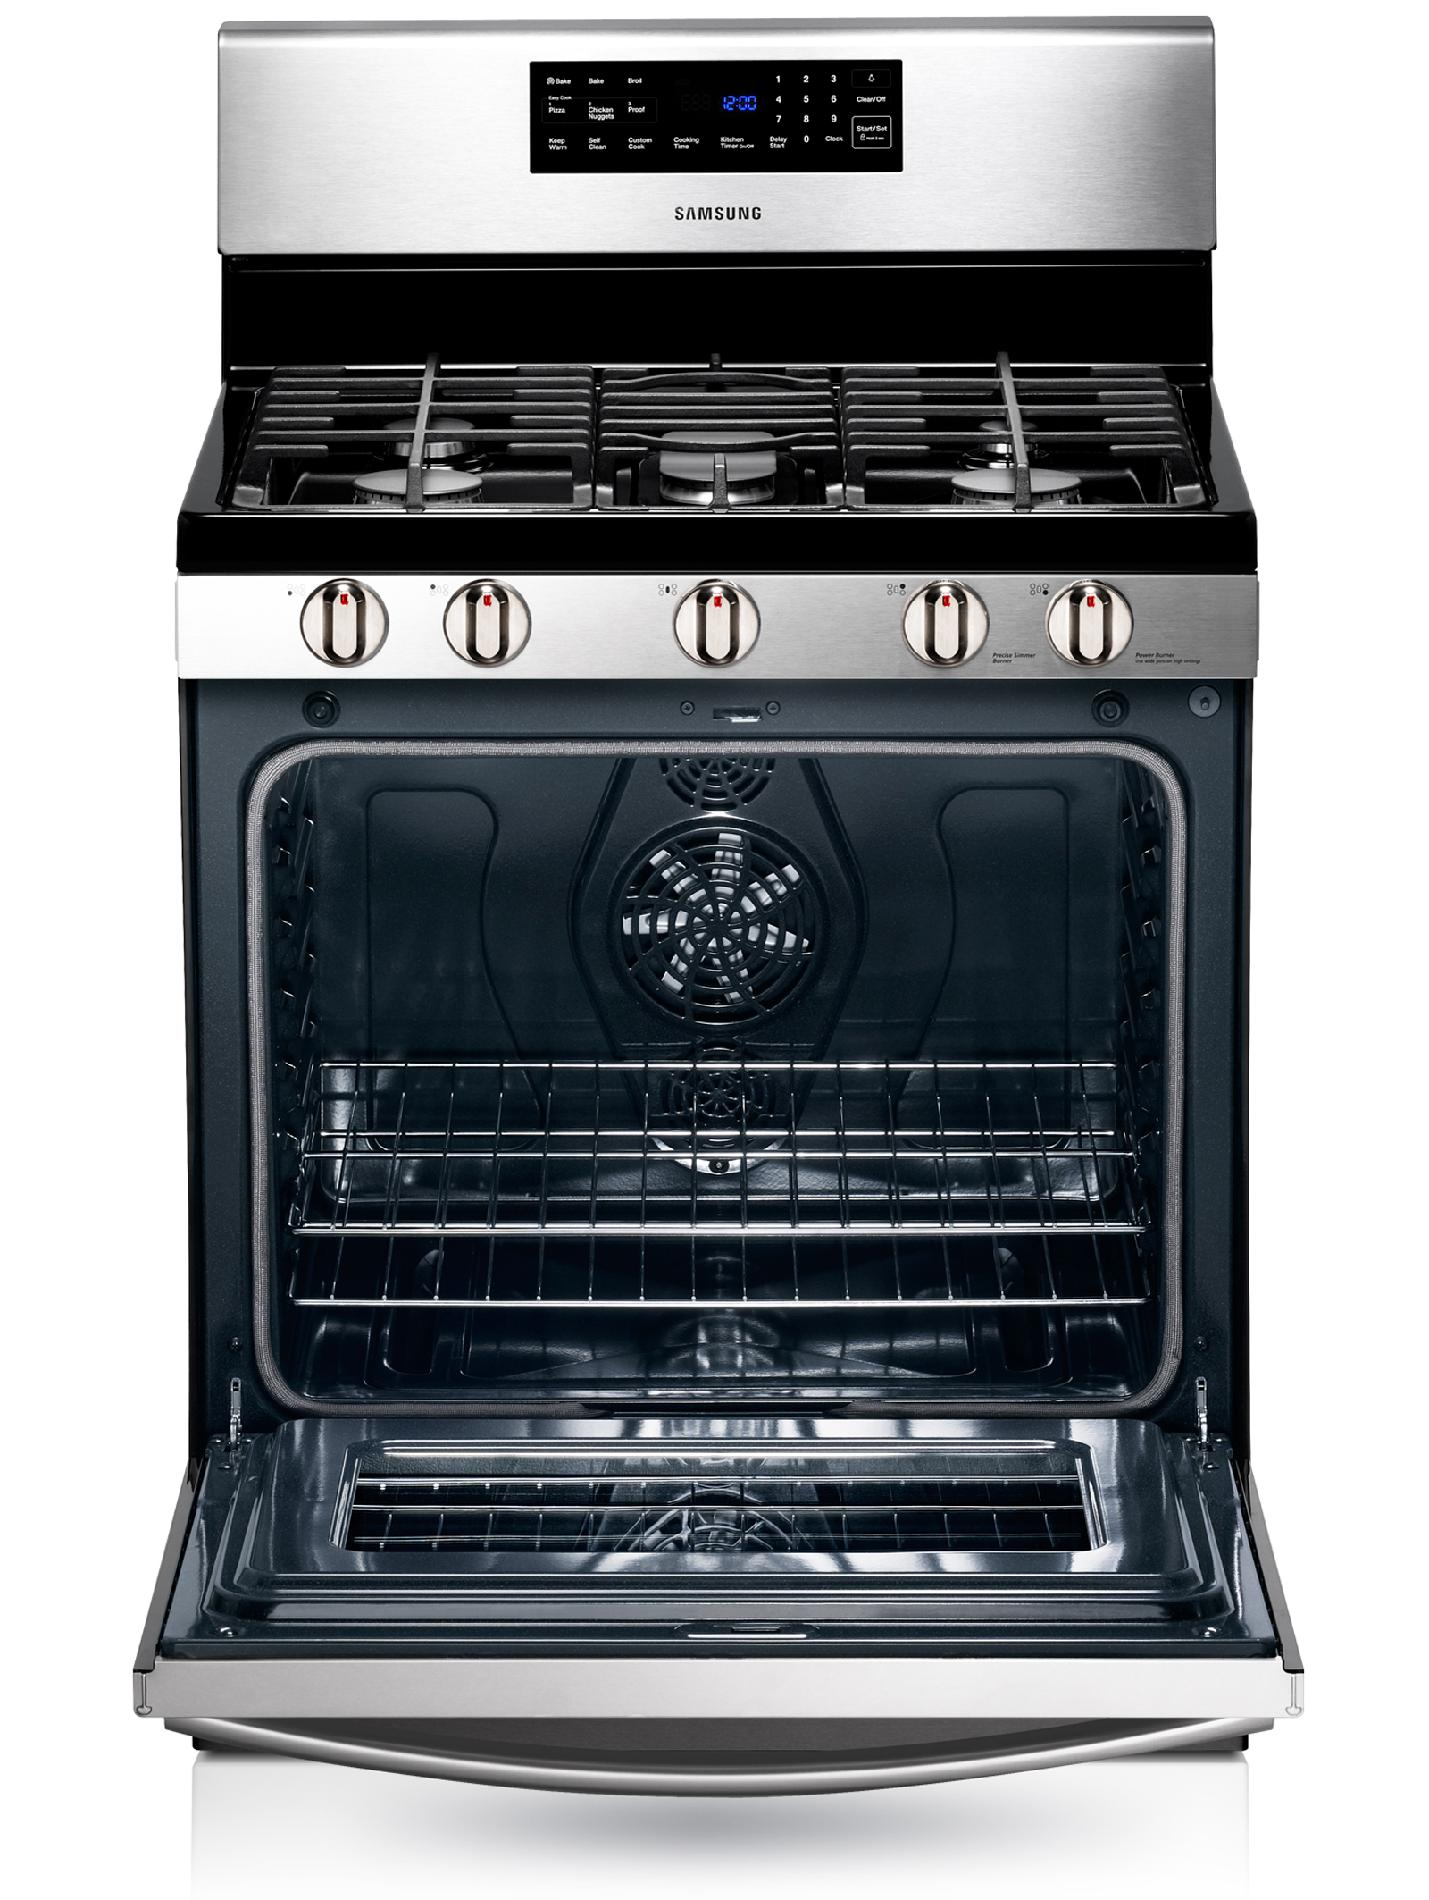 Samsung 5.8 cu. ft. Gas Range - Stainless Steel